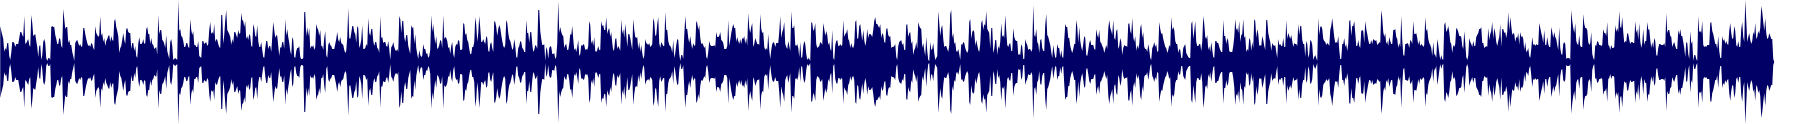 waveform of track #72195